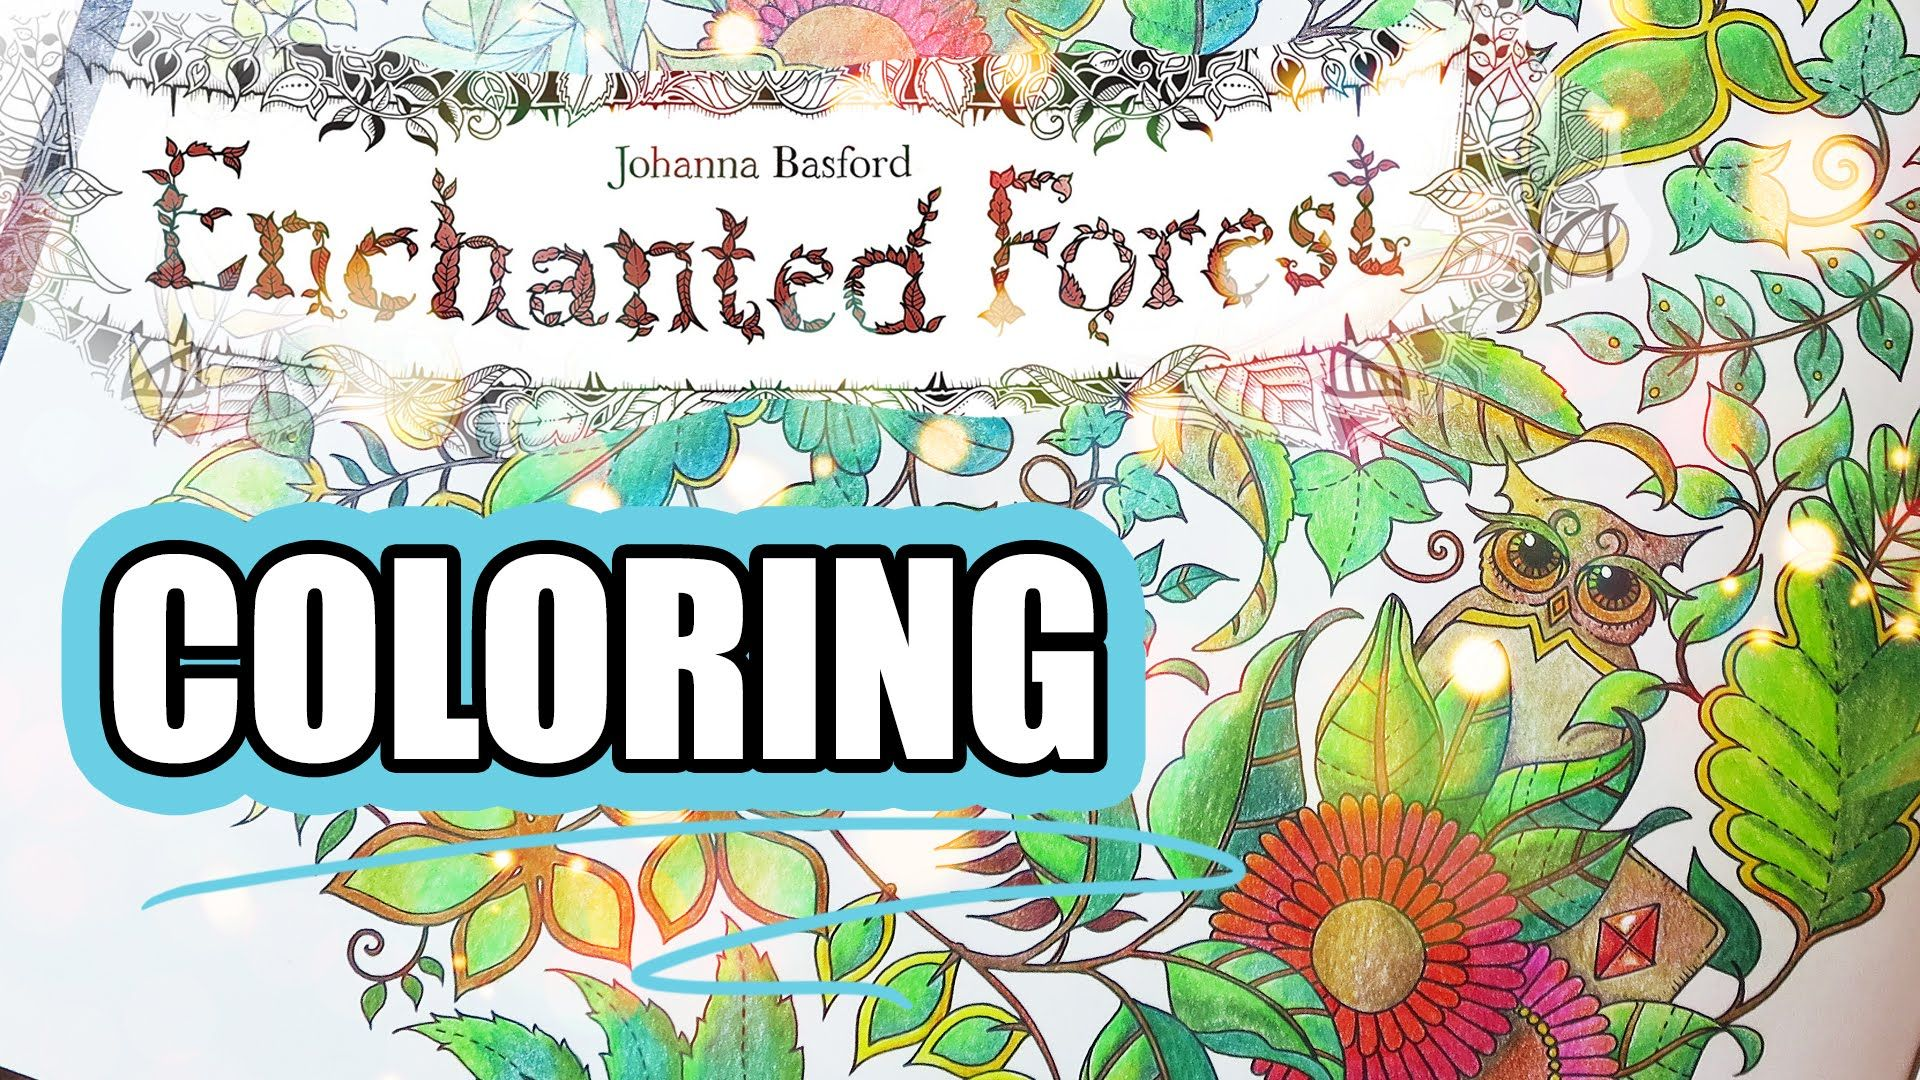 Coloring Book Journey - 001 Enchanted Forest by Johanna Basford